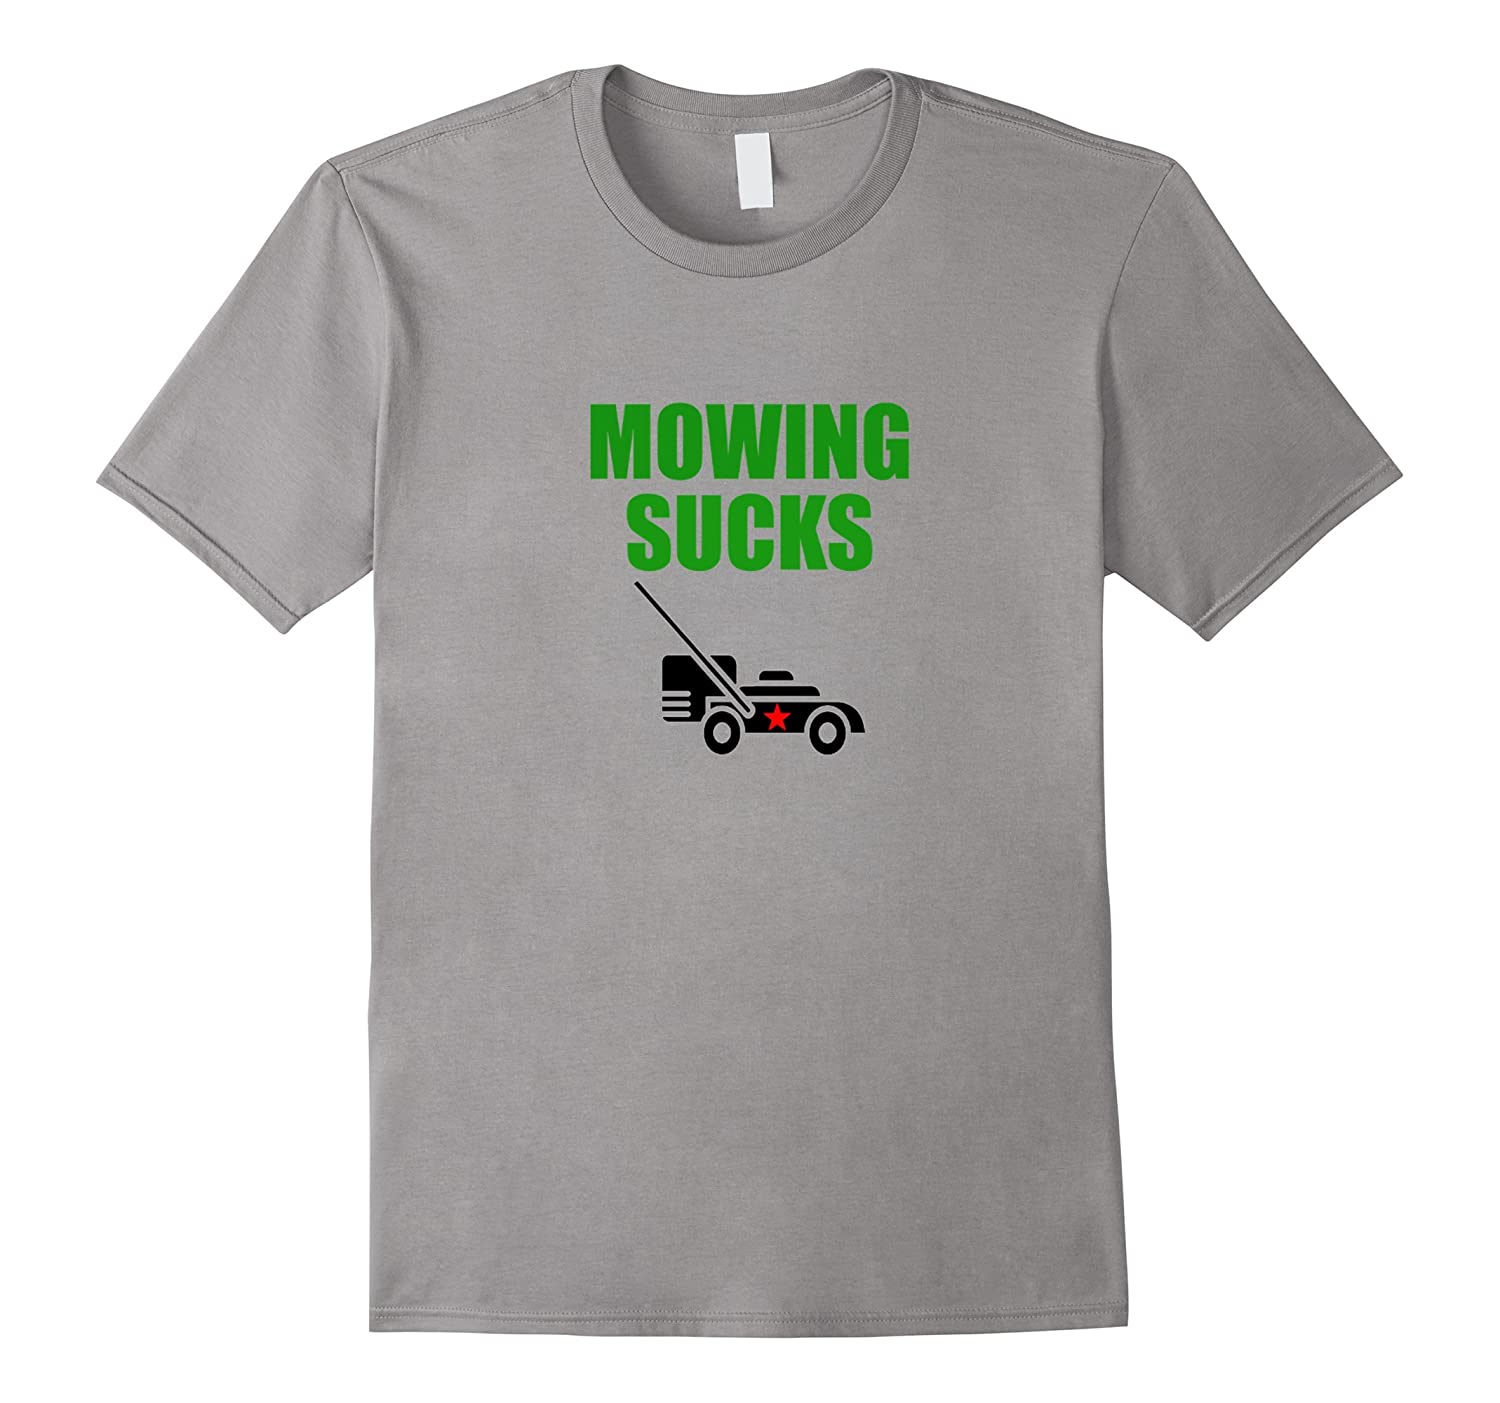 Mowing Sucks Funny Mowing T Shirt- Yard Work Shirt-T-Shirt